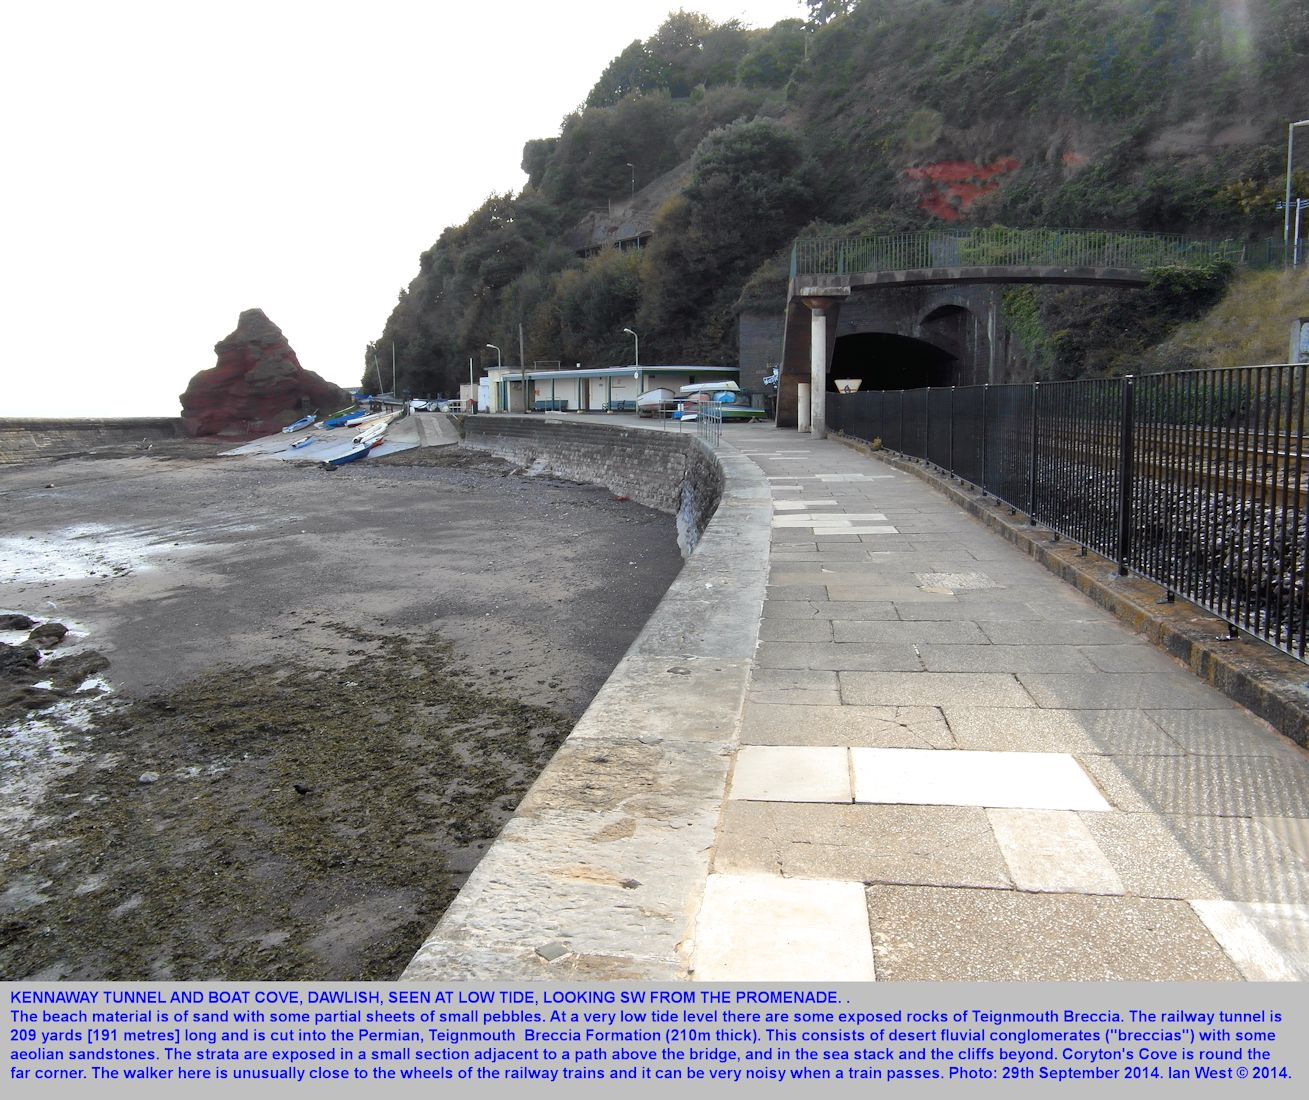 The beach at Boat Cove and near the Kennaway Tunnel entrance at the southwestern part of Dawlish sea front, Devon, 29th September 2014 at low tide